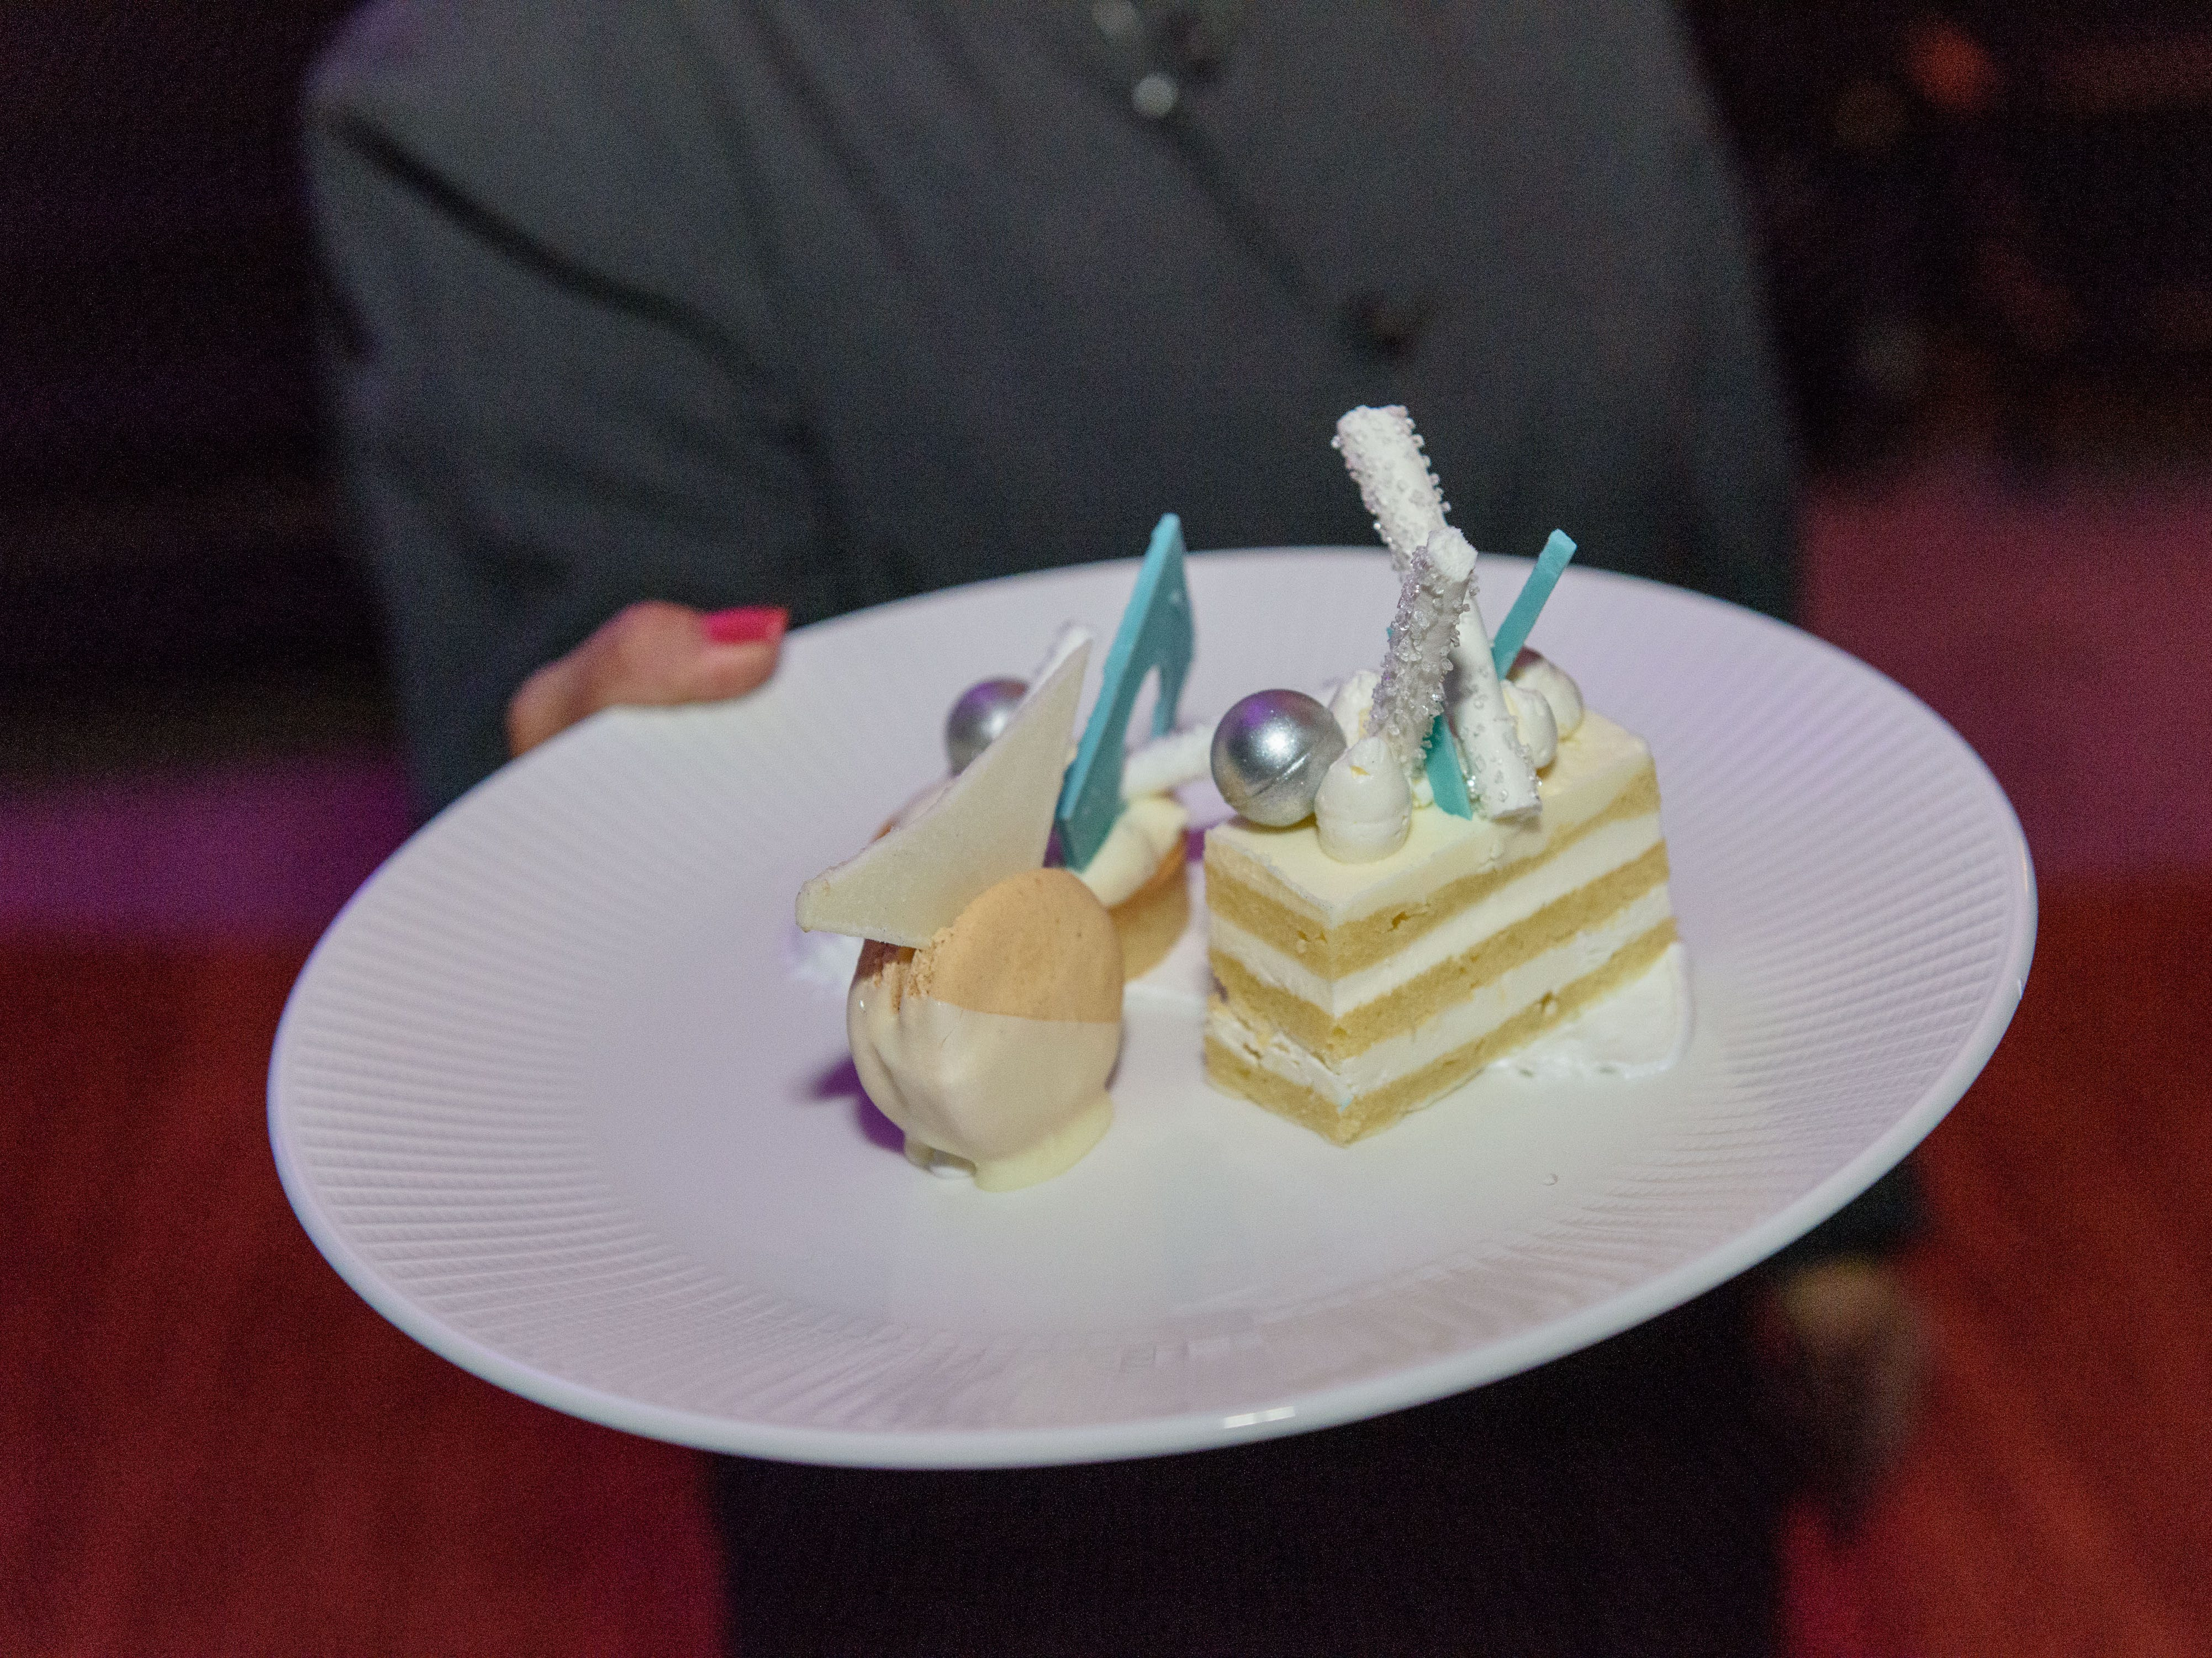 The special winter wonderland-themed dessert served after the raffle at the Snow Ball Gala at the Omni Hotel, a benefit for the Jennifer Lawrence Cardiac Intensive Care Unit (CICU) at Norton ChildrenÕs Hospital. Nov. 17, 2018